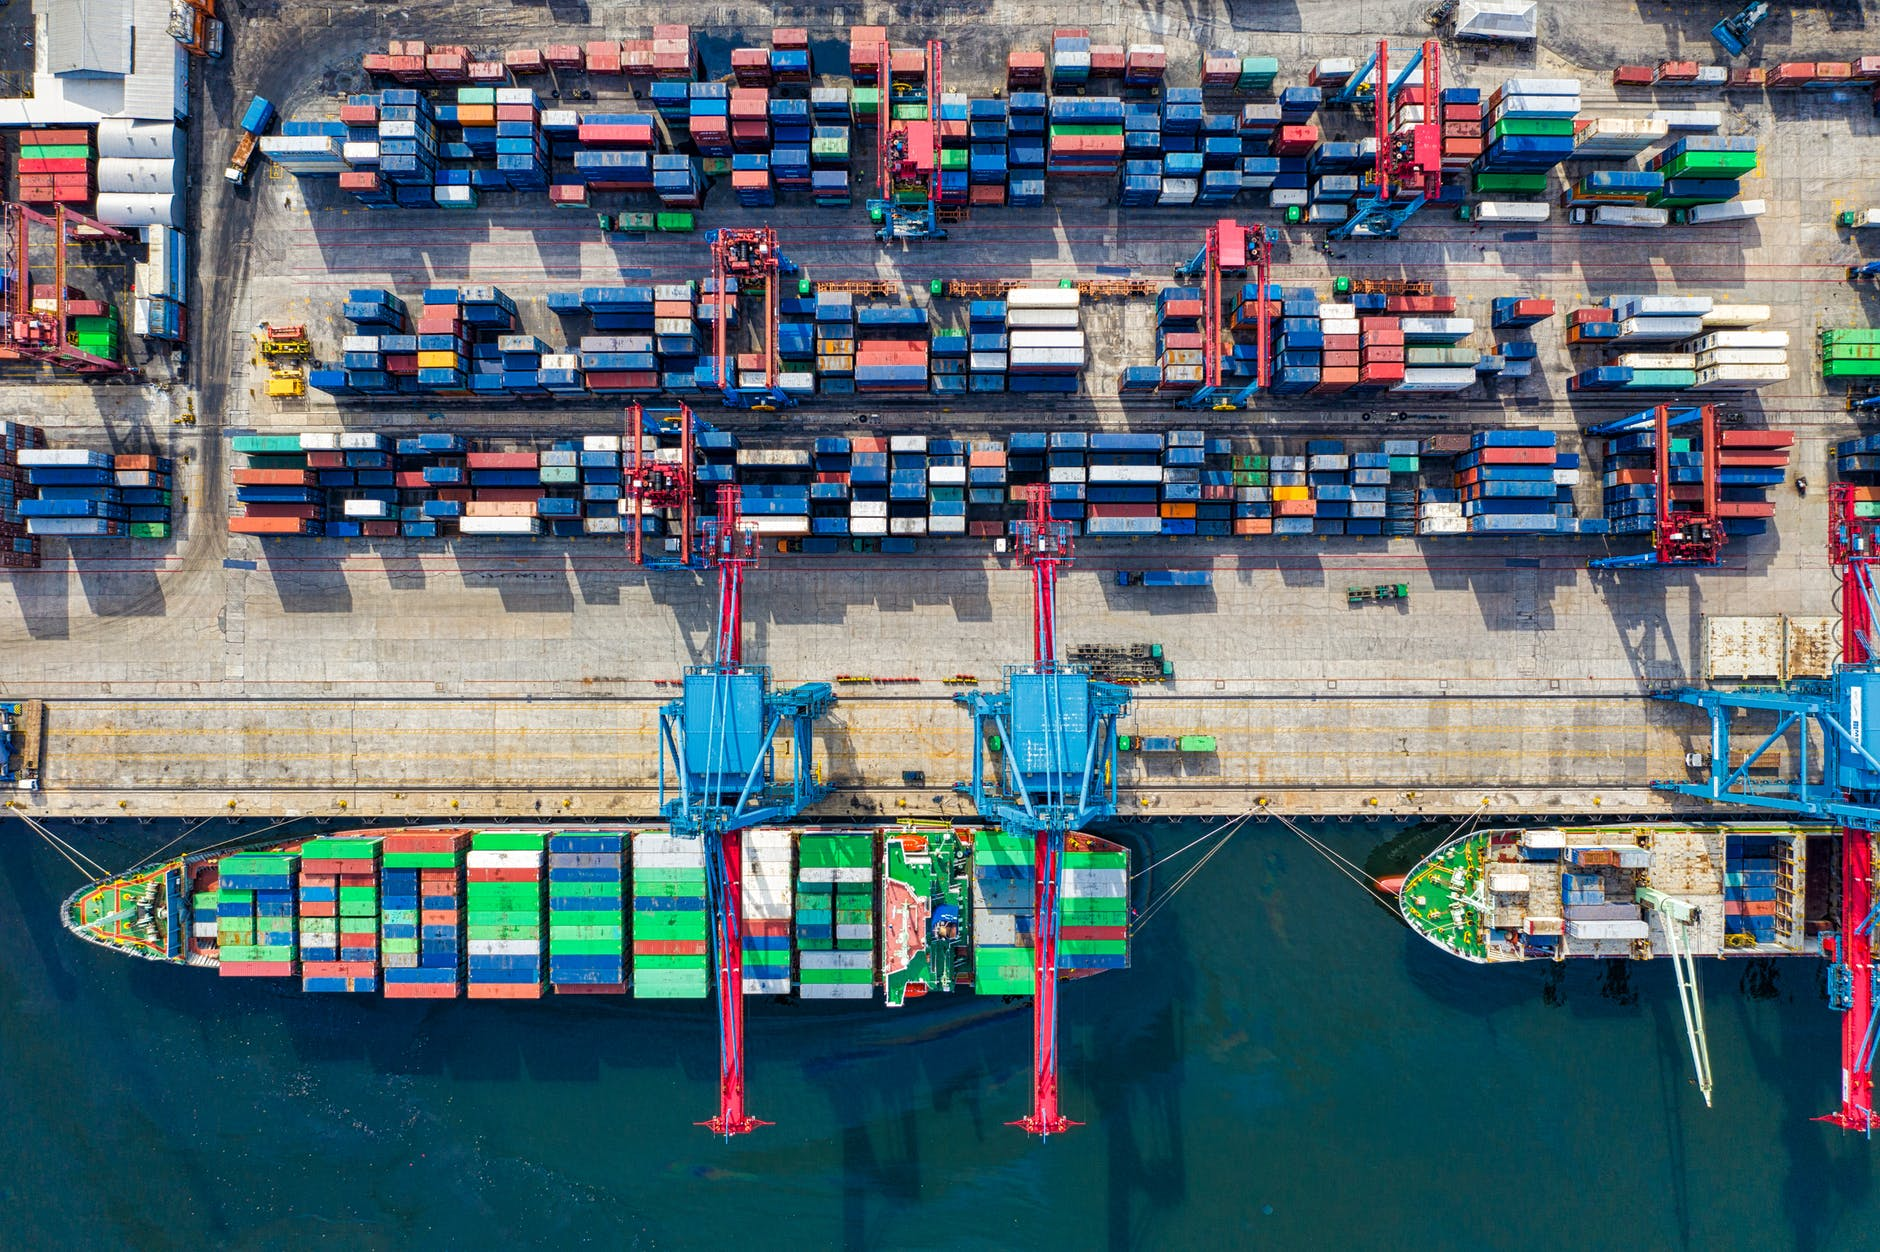 birds eye view photo of freight containers